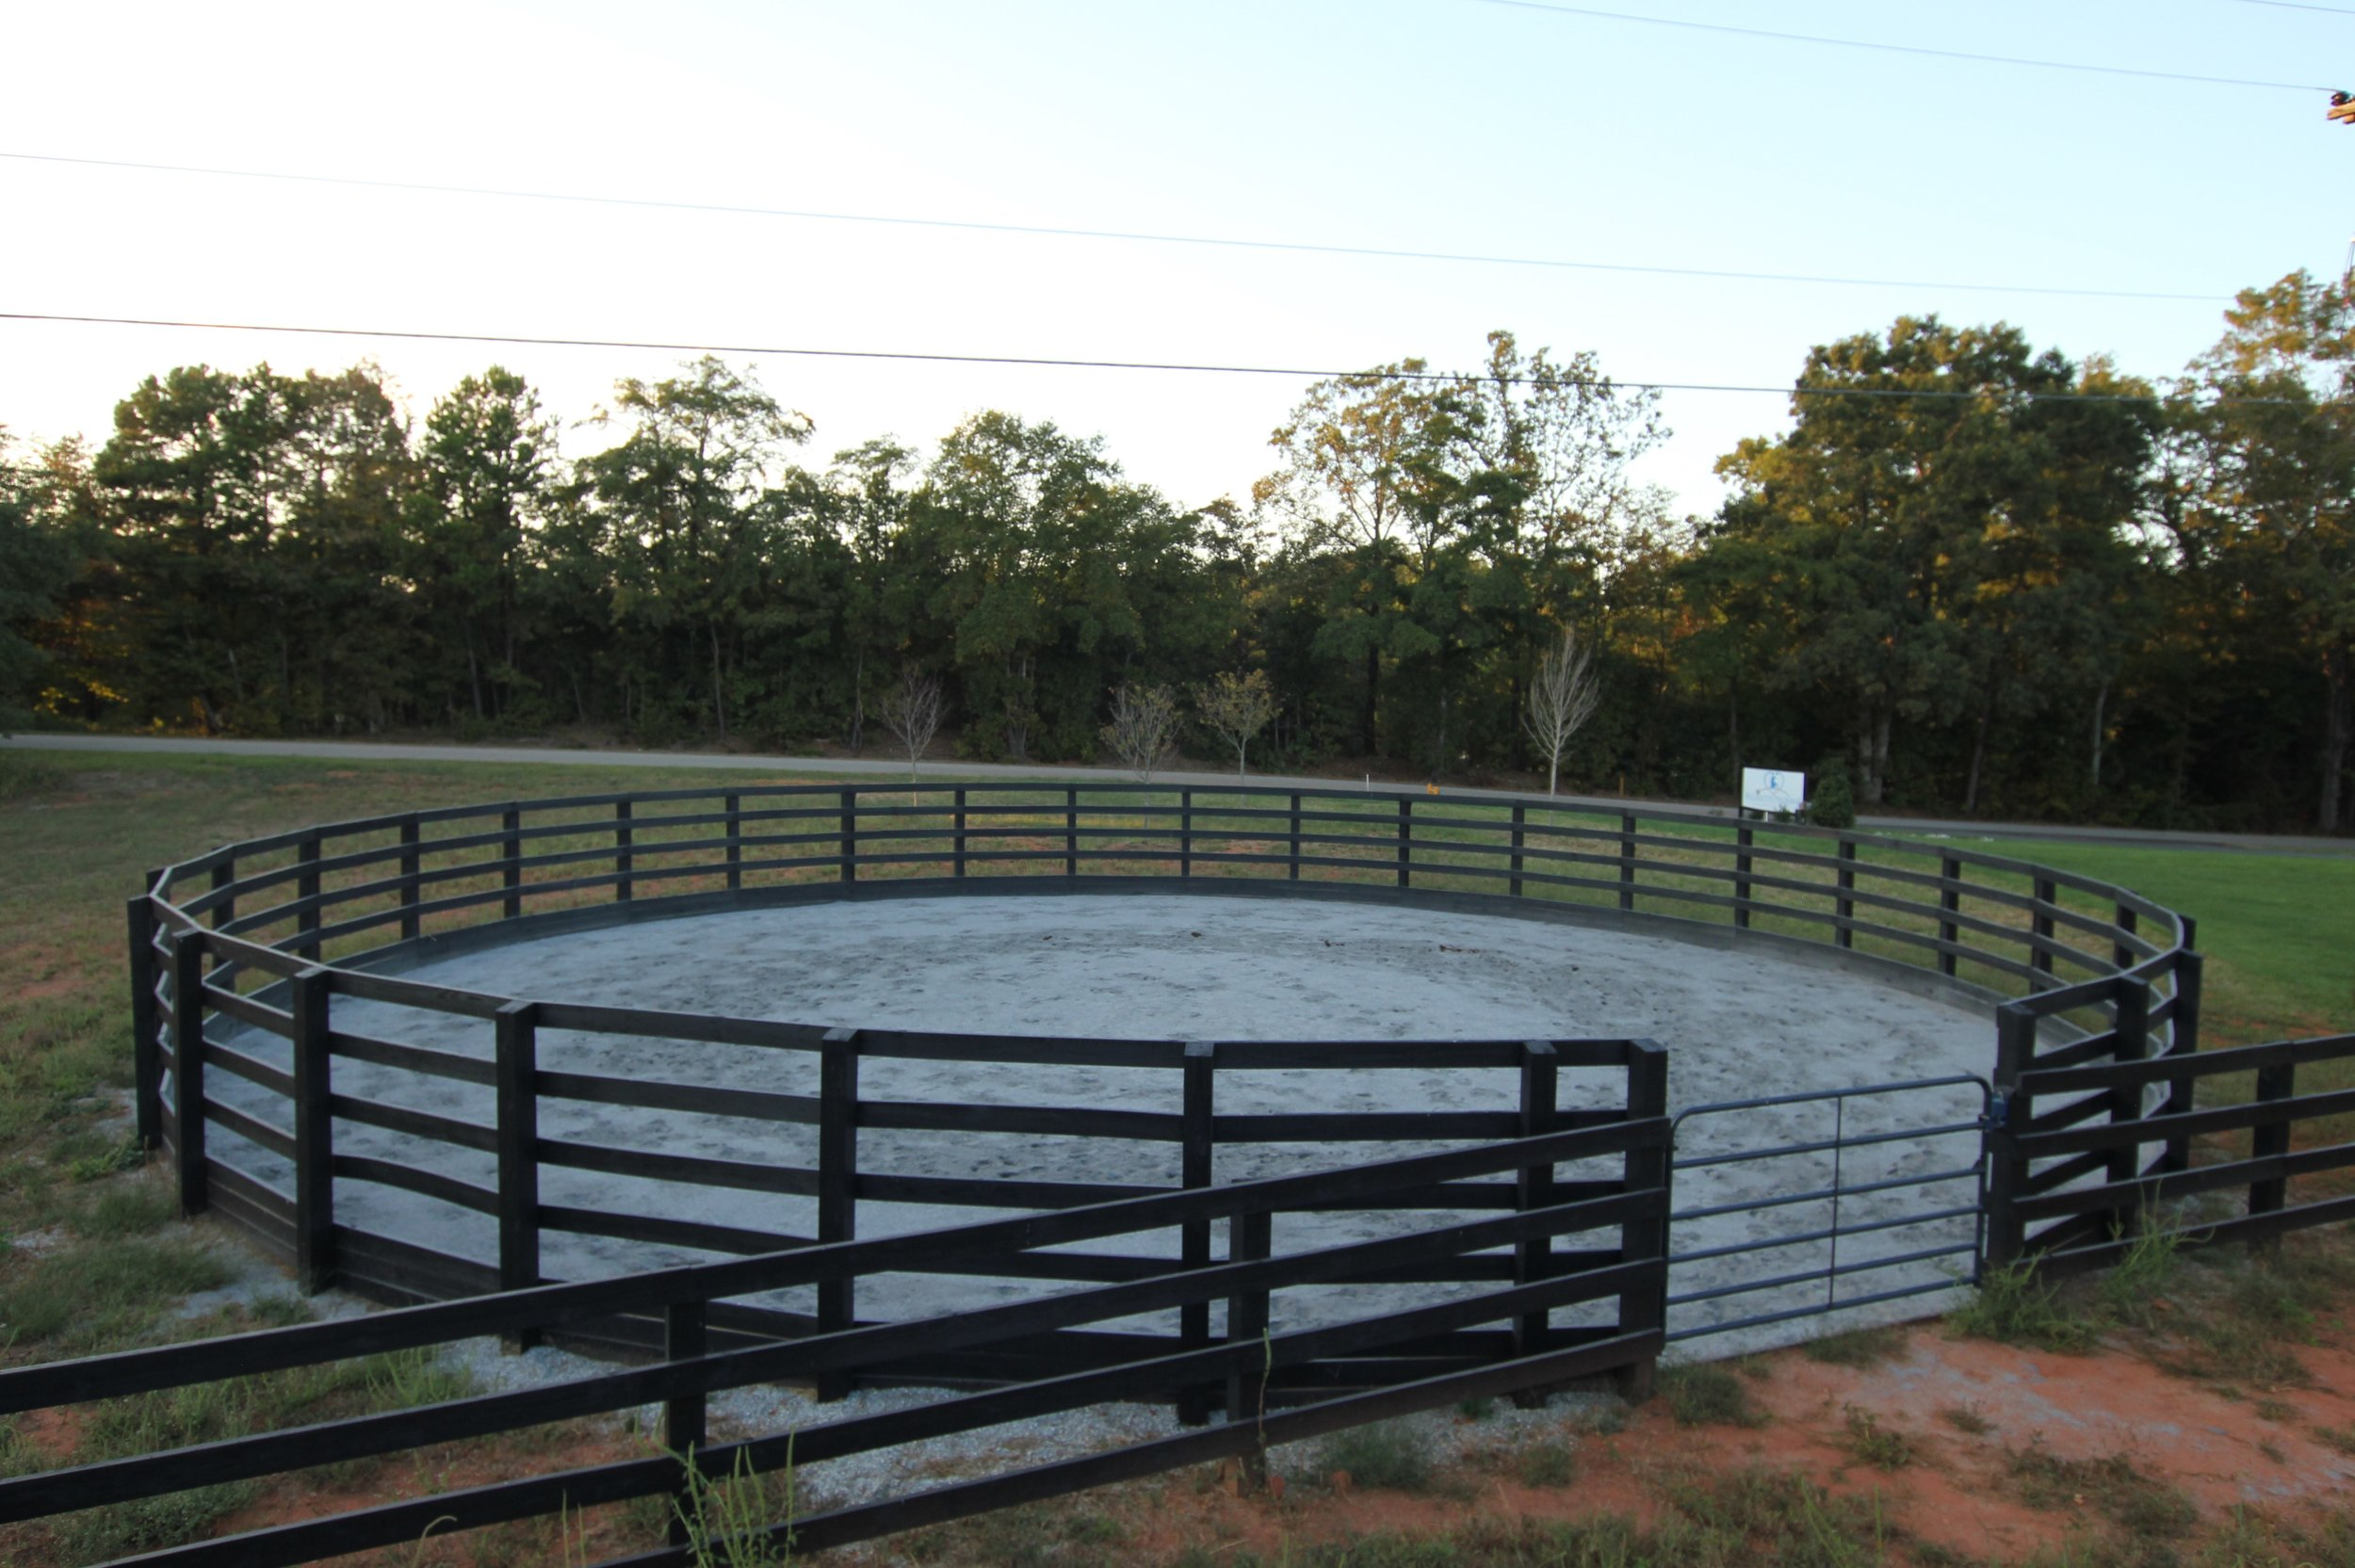 Round pen for lameness evaluation.